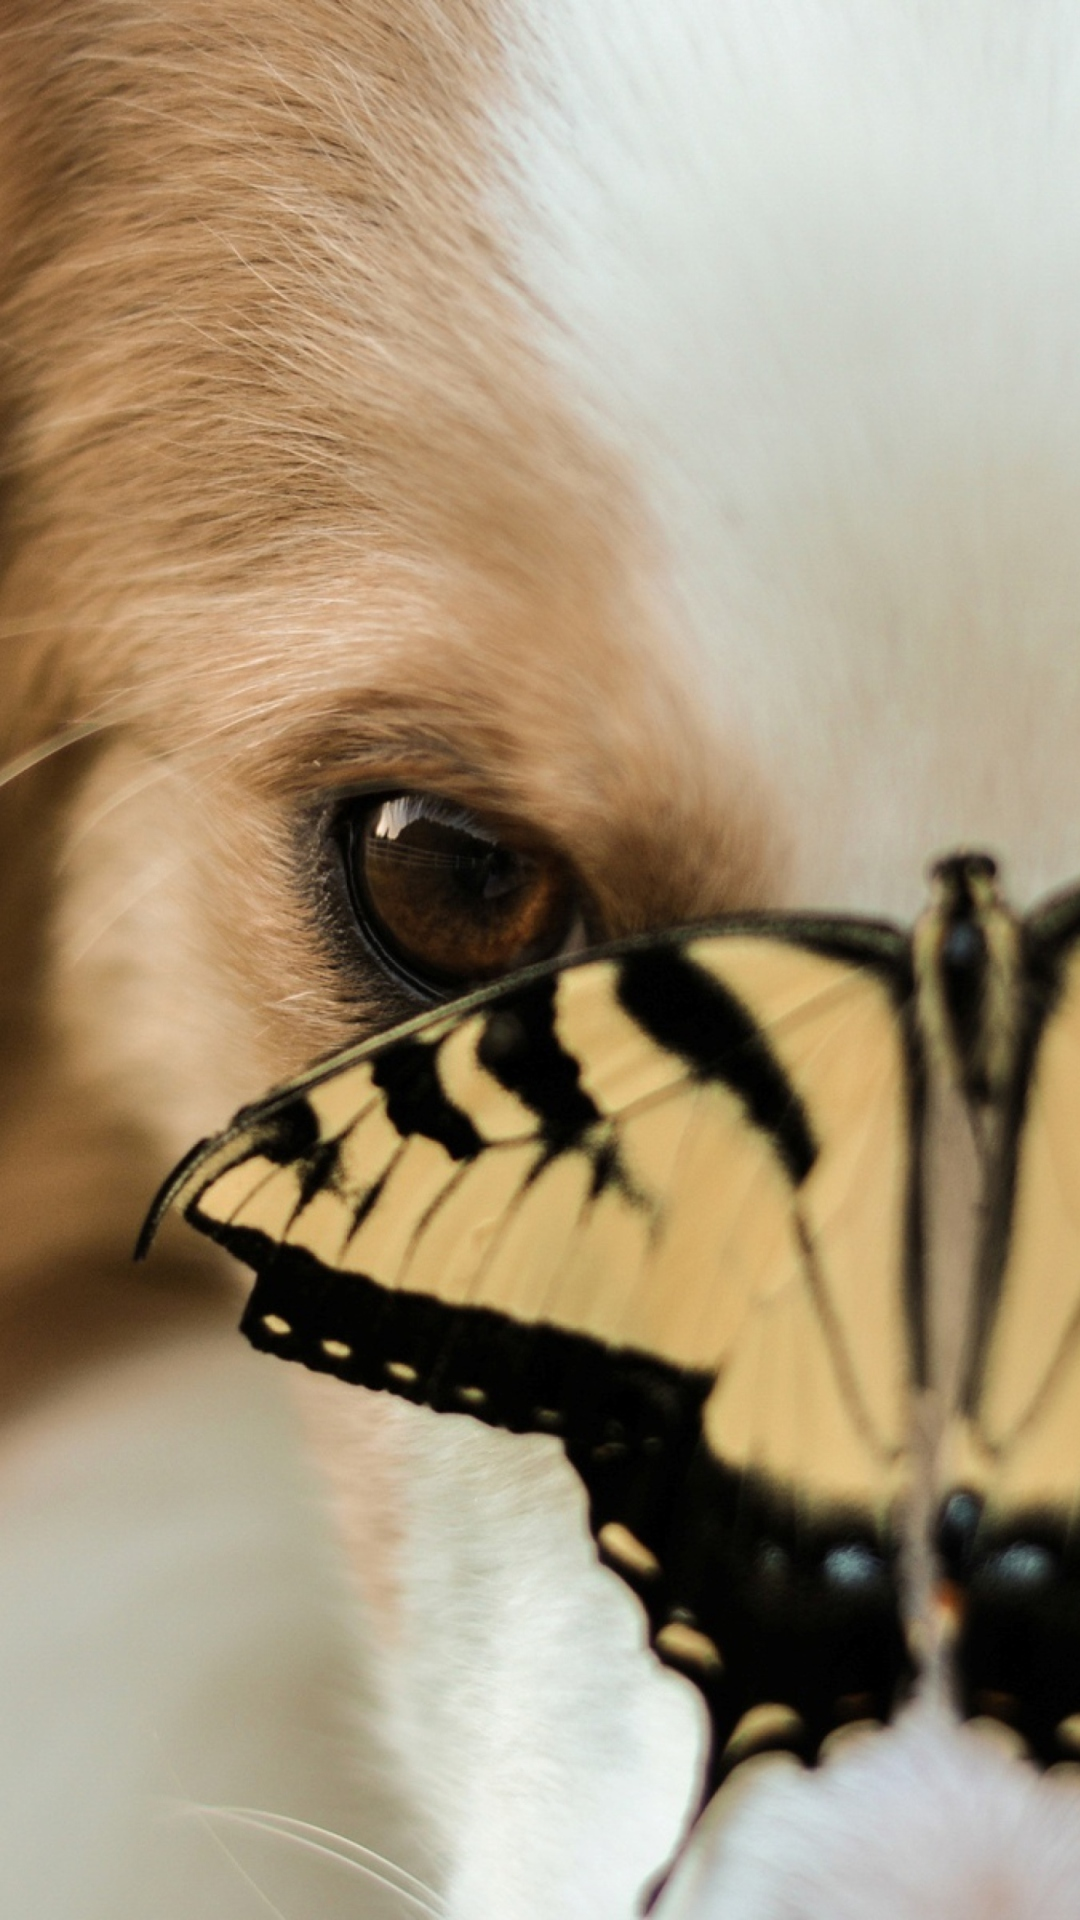 I ordered the medium for my 20b pug Same build as the dog in the picture But Im not impressed at all 1 The wing color is not orange like a monarch butterfly